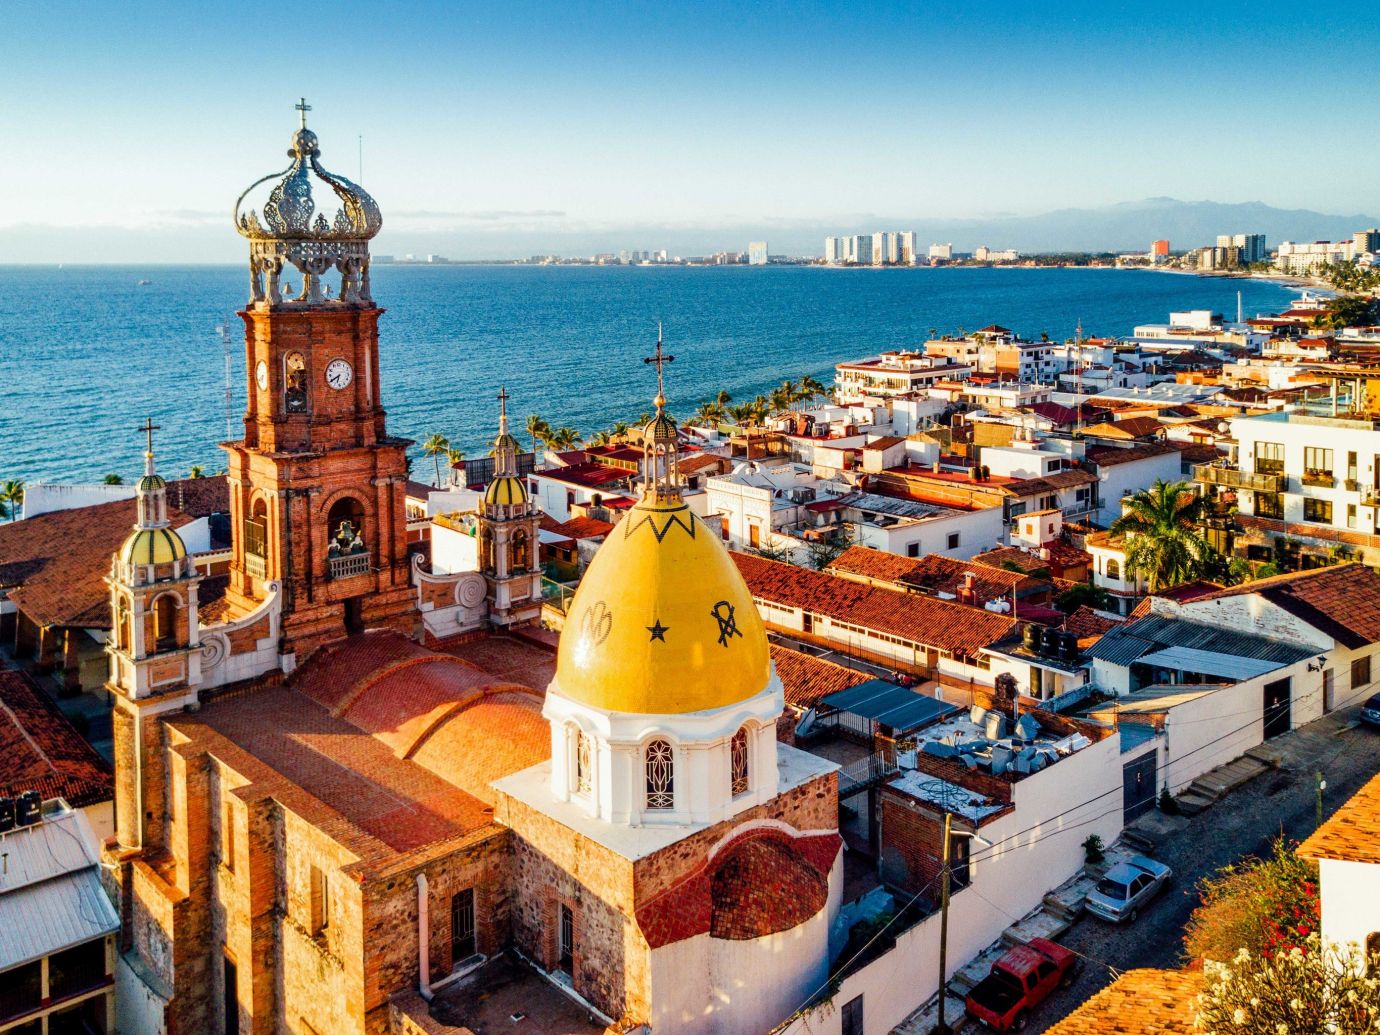 Aerial shot of the cityscape that is Puerto Vallarta